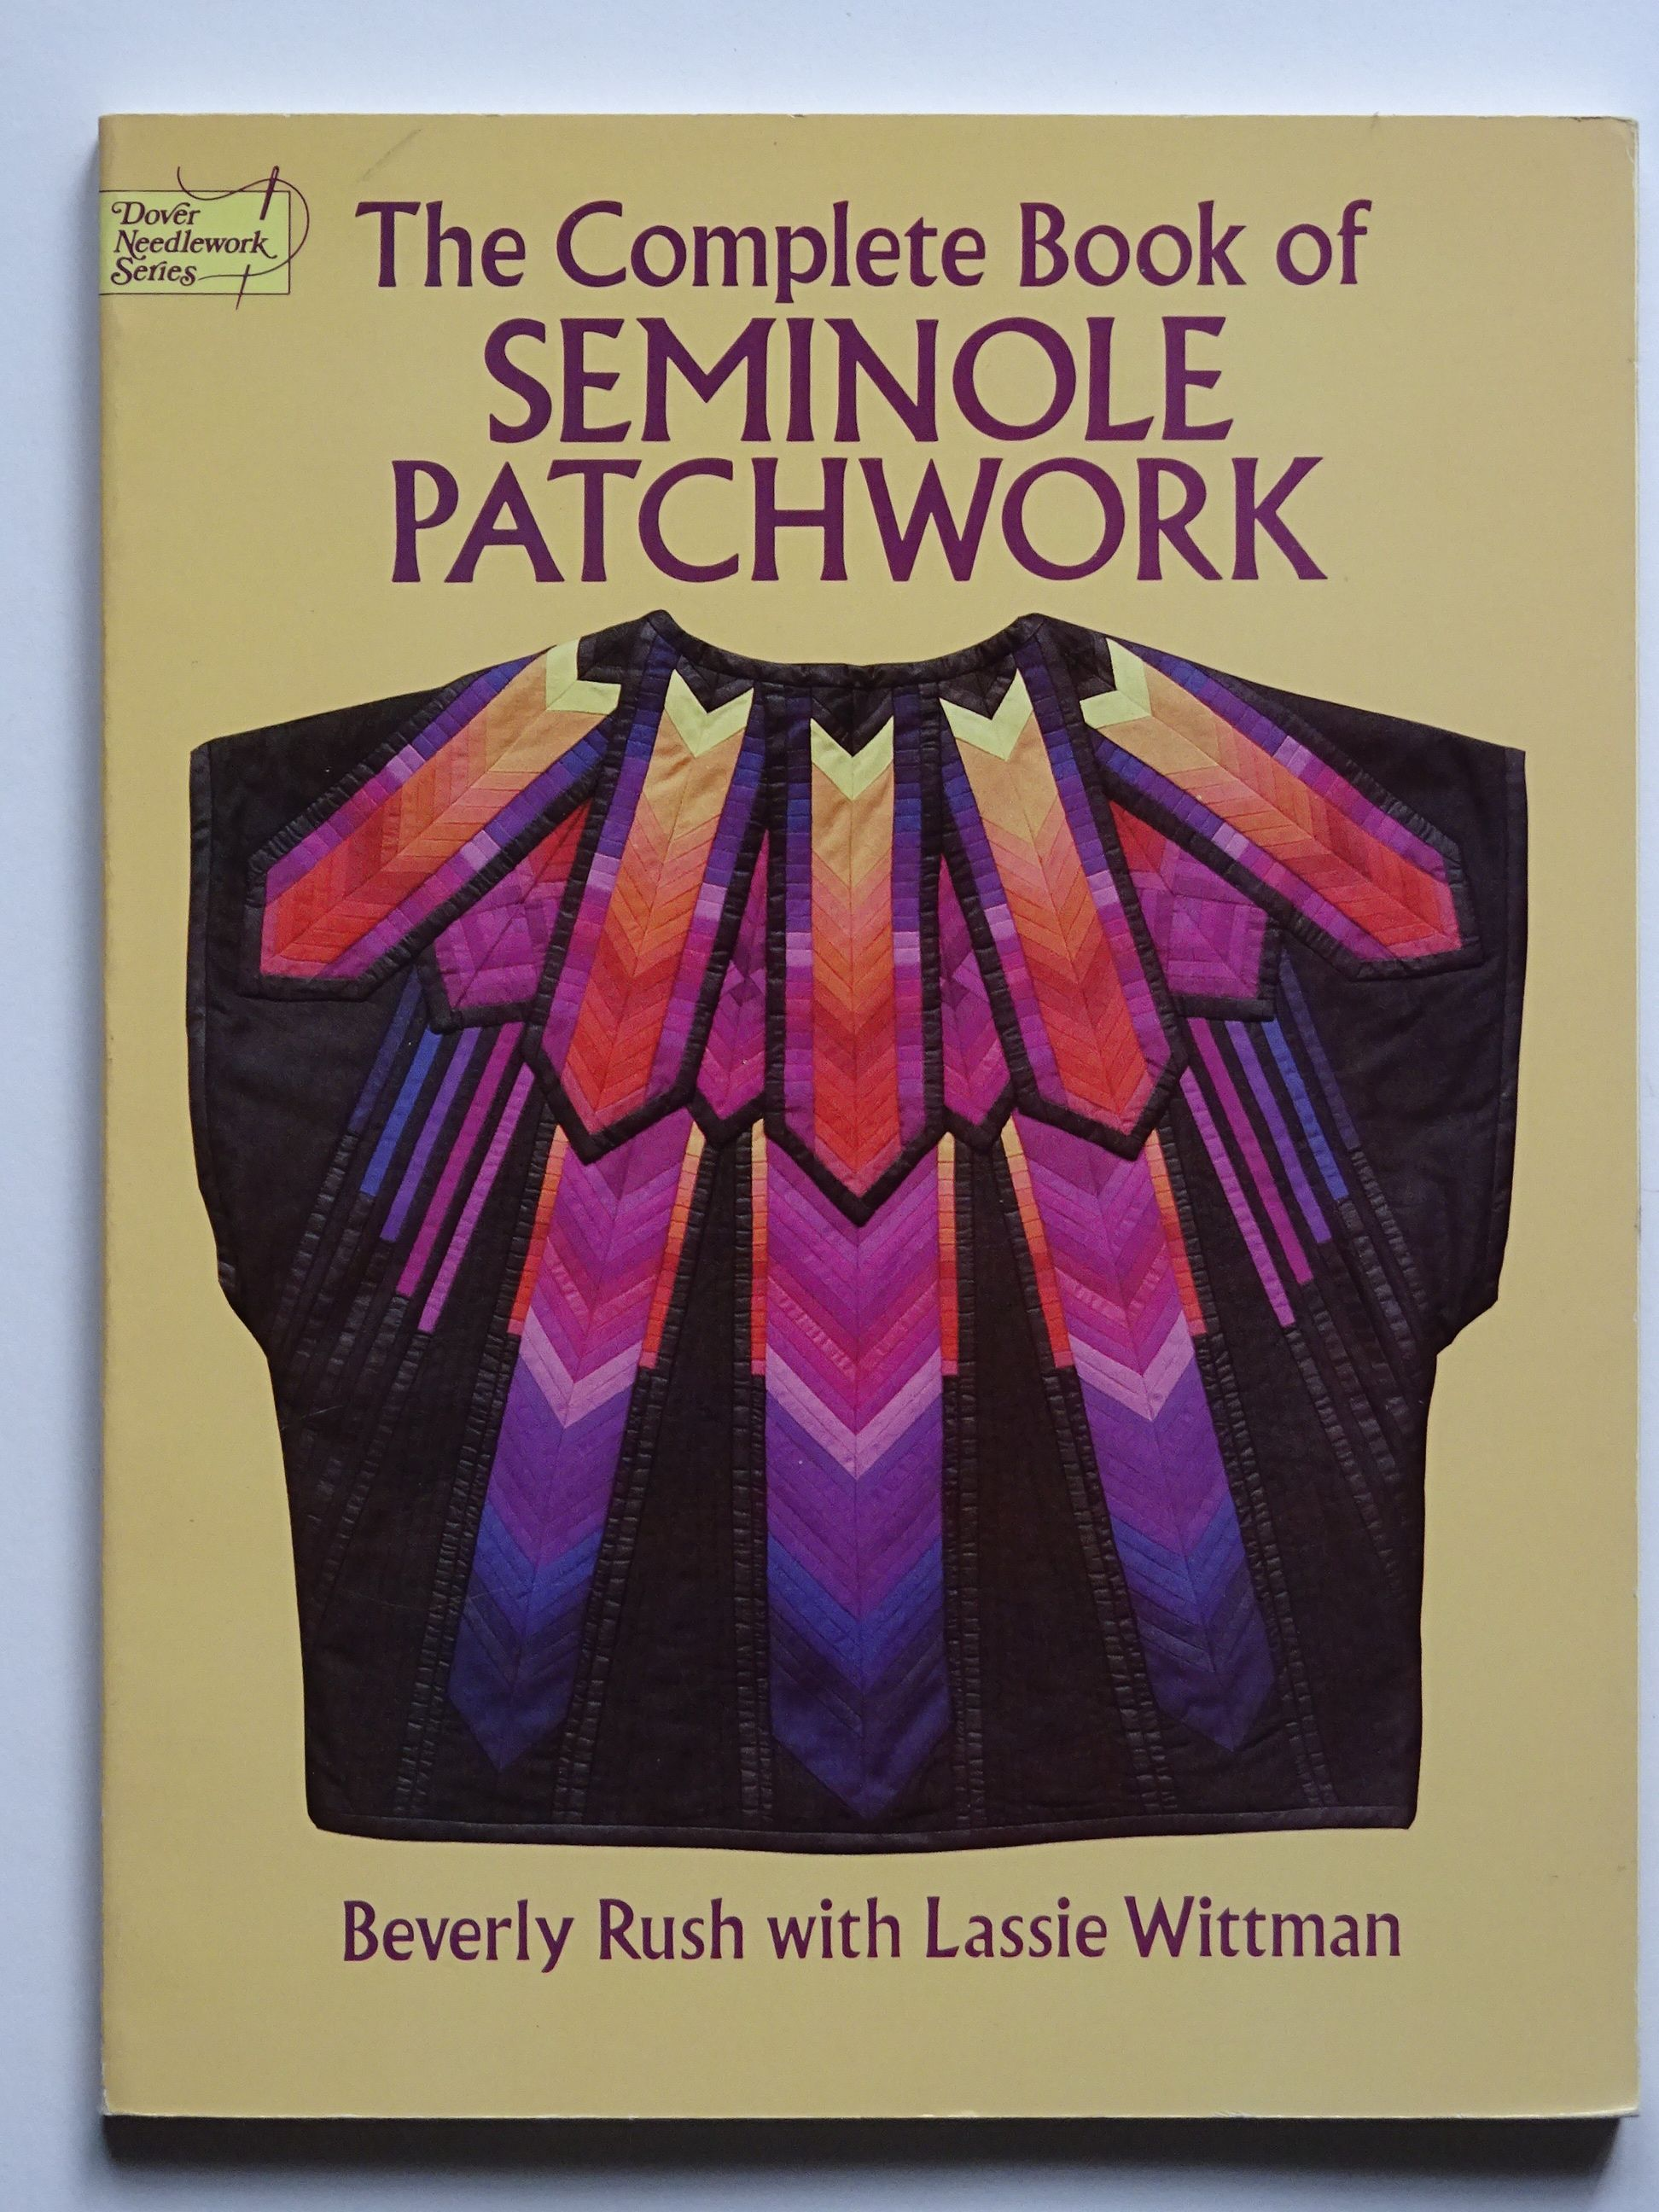 Rush, Beverly & Wittman, Lassie - The Complete Book of Seminole Patchwork